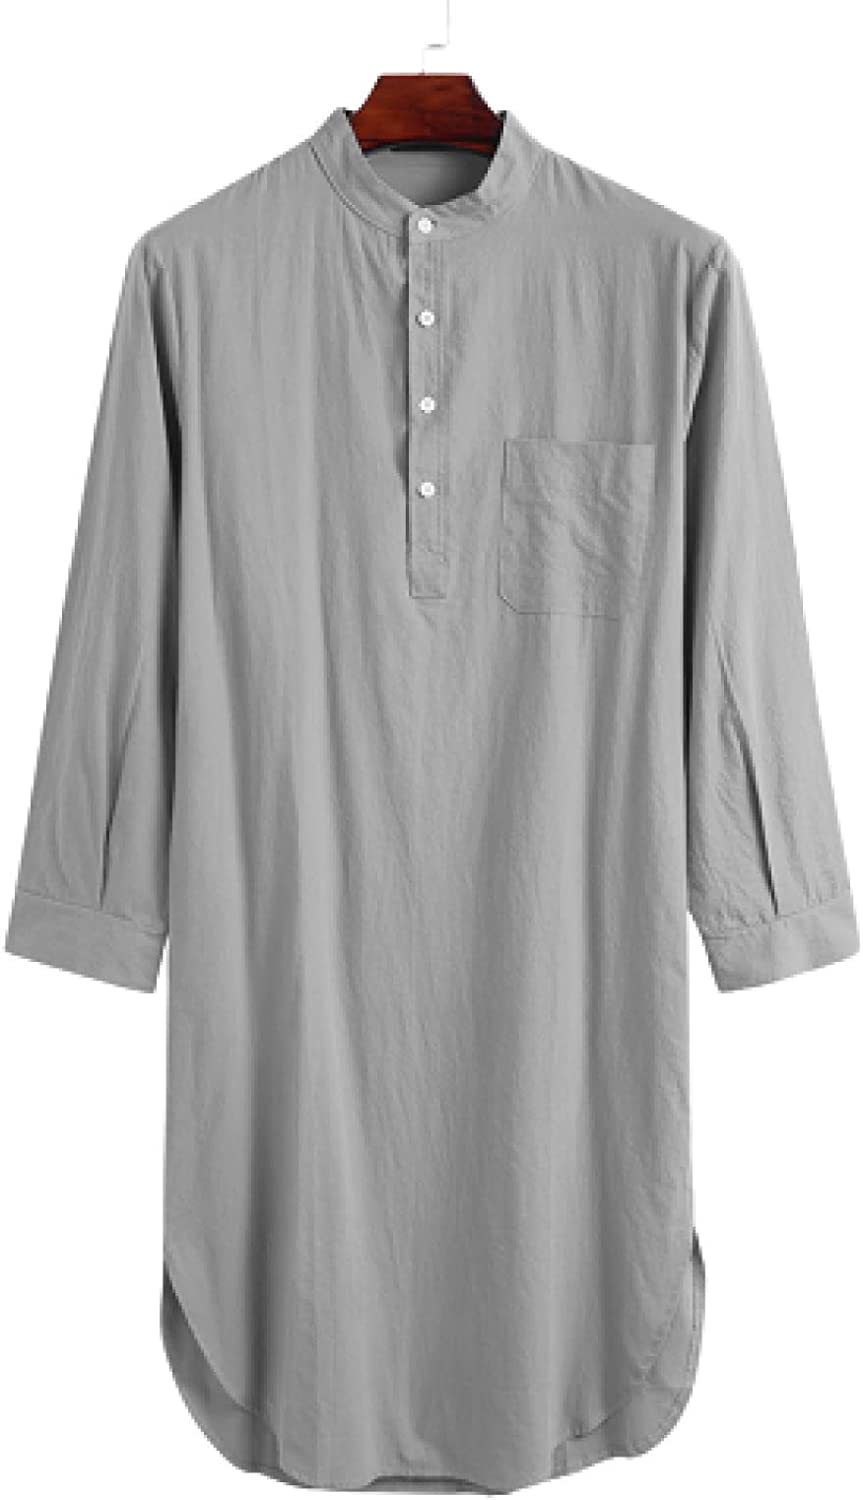 5 ☆ very popular Men's Solid Sales for sale Color Long Shirt Pocket Side Stitching Streetwear Si